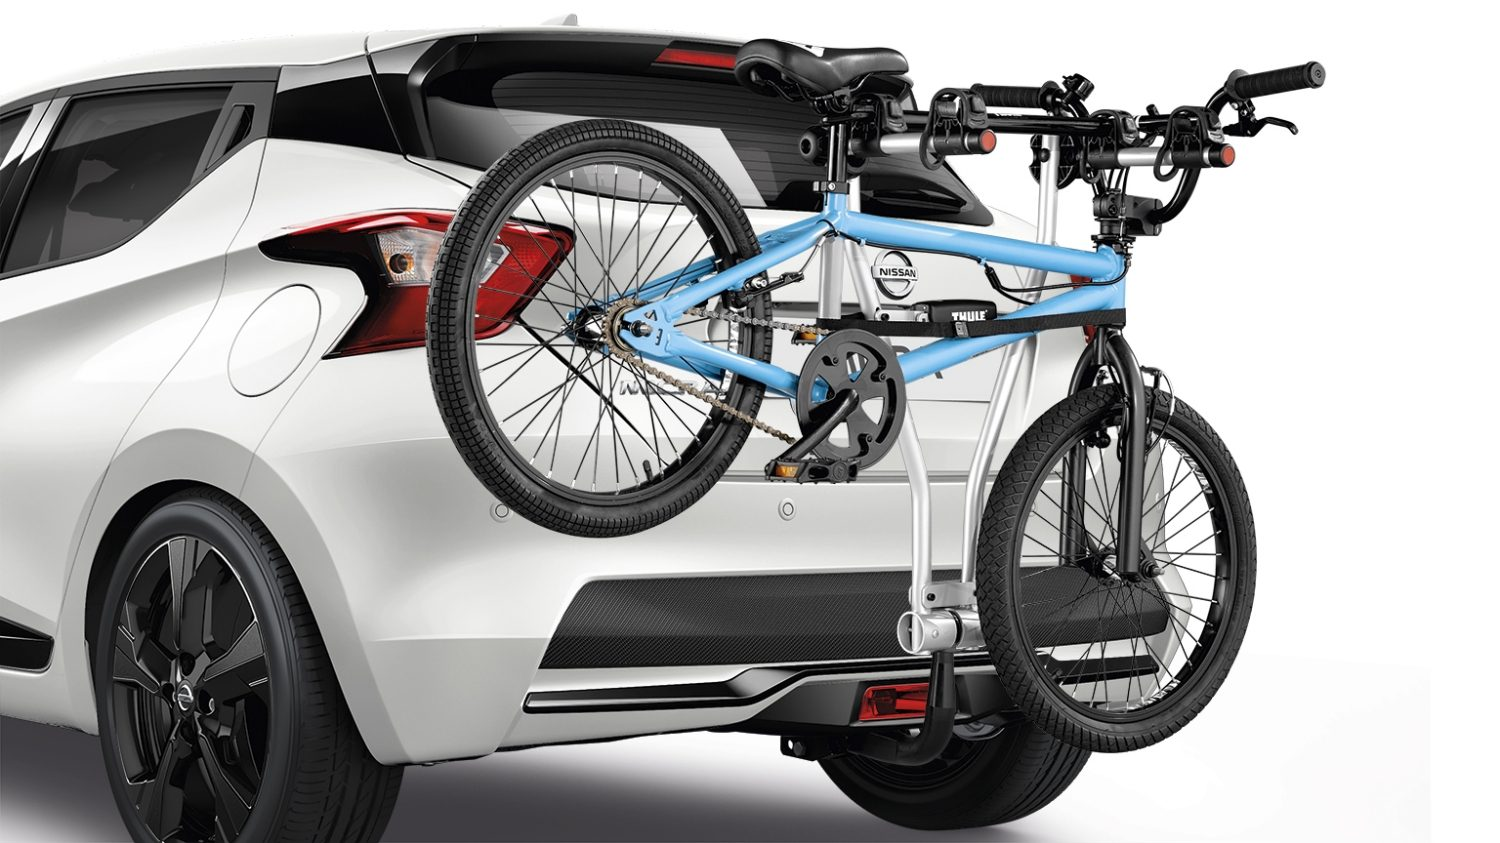 Nissan Micra Bike Carrier 2 Bikes